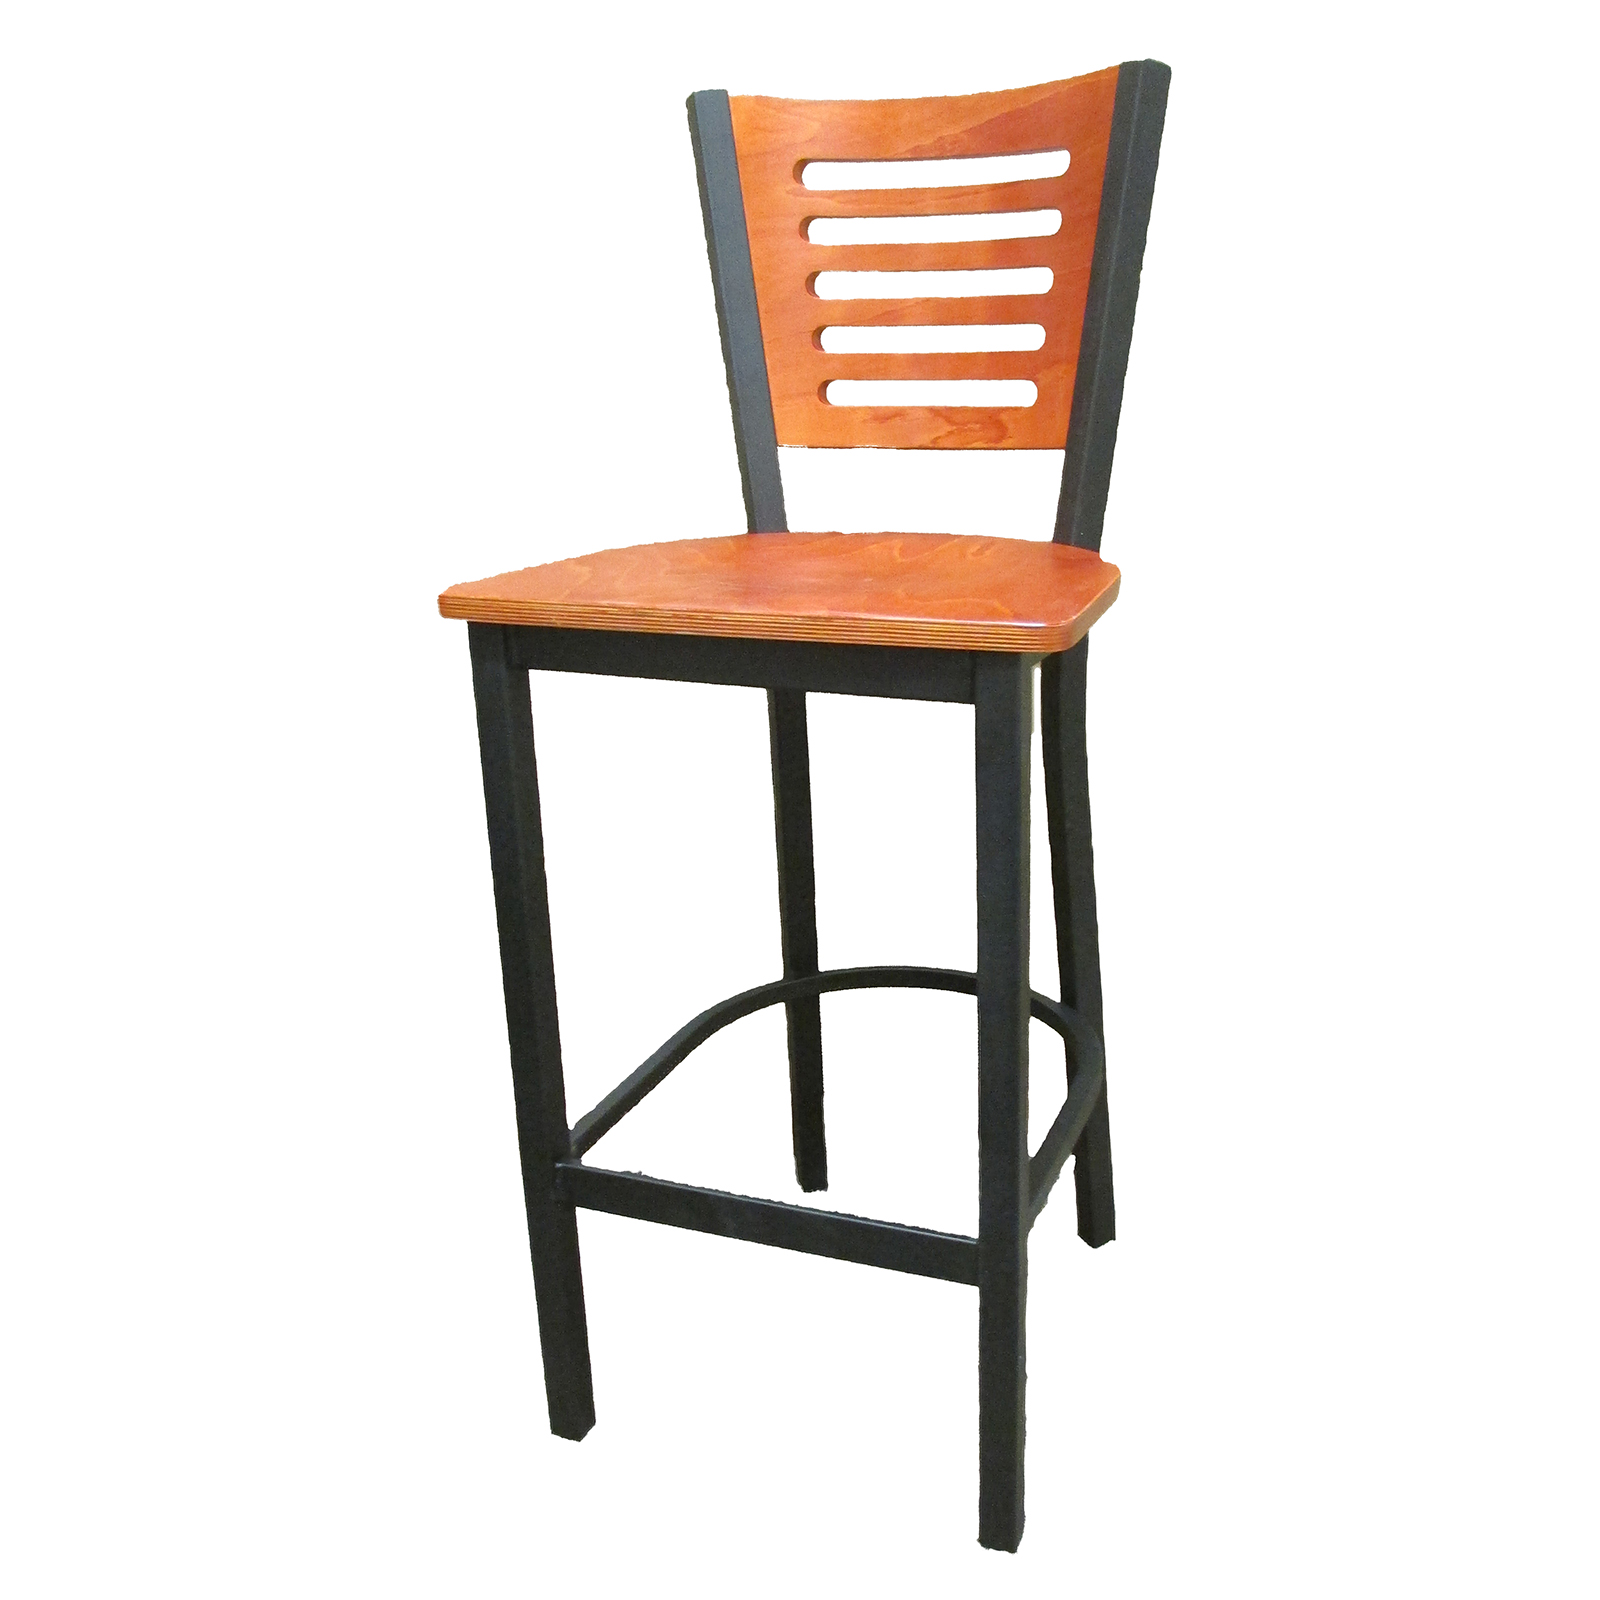 Oak Street SL2150-1-5 bar stool, indoor